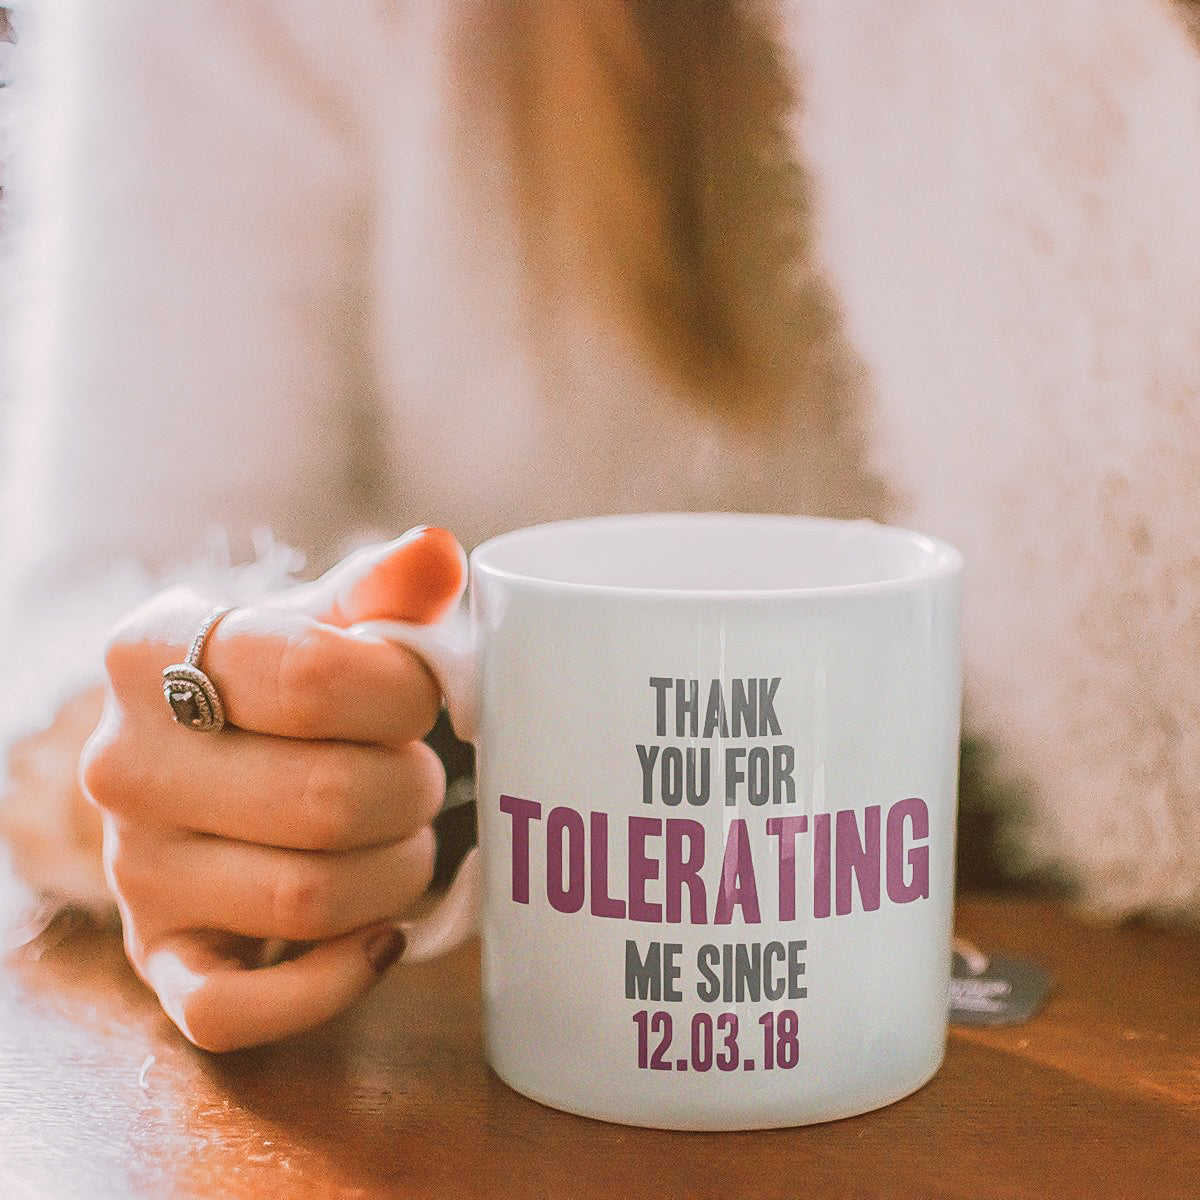 Personalised 'Thank You For Tolerating Me' Mug Personalised 'Thank You For Tolerating Me' Mug Personalised 'Thank You For Tolerating Me' Mug Personalised 'Thank You For Tolerating Me' Mug Personalised 'Thank You For Tolerating Me' Mug Personalised 'Thank You For Tolerating Me' Mug